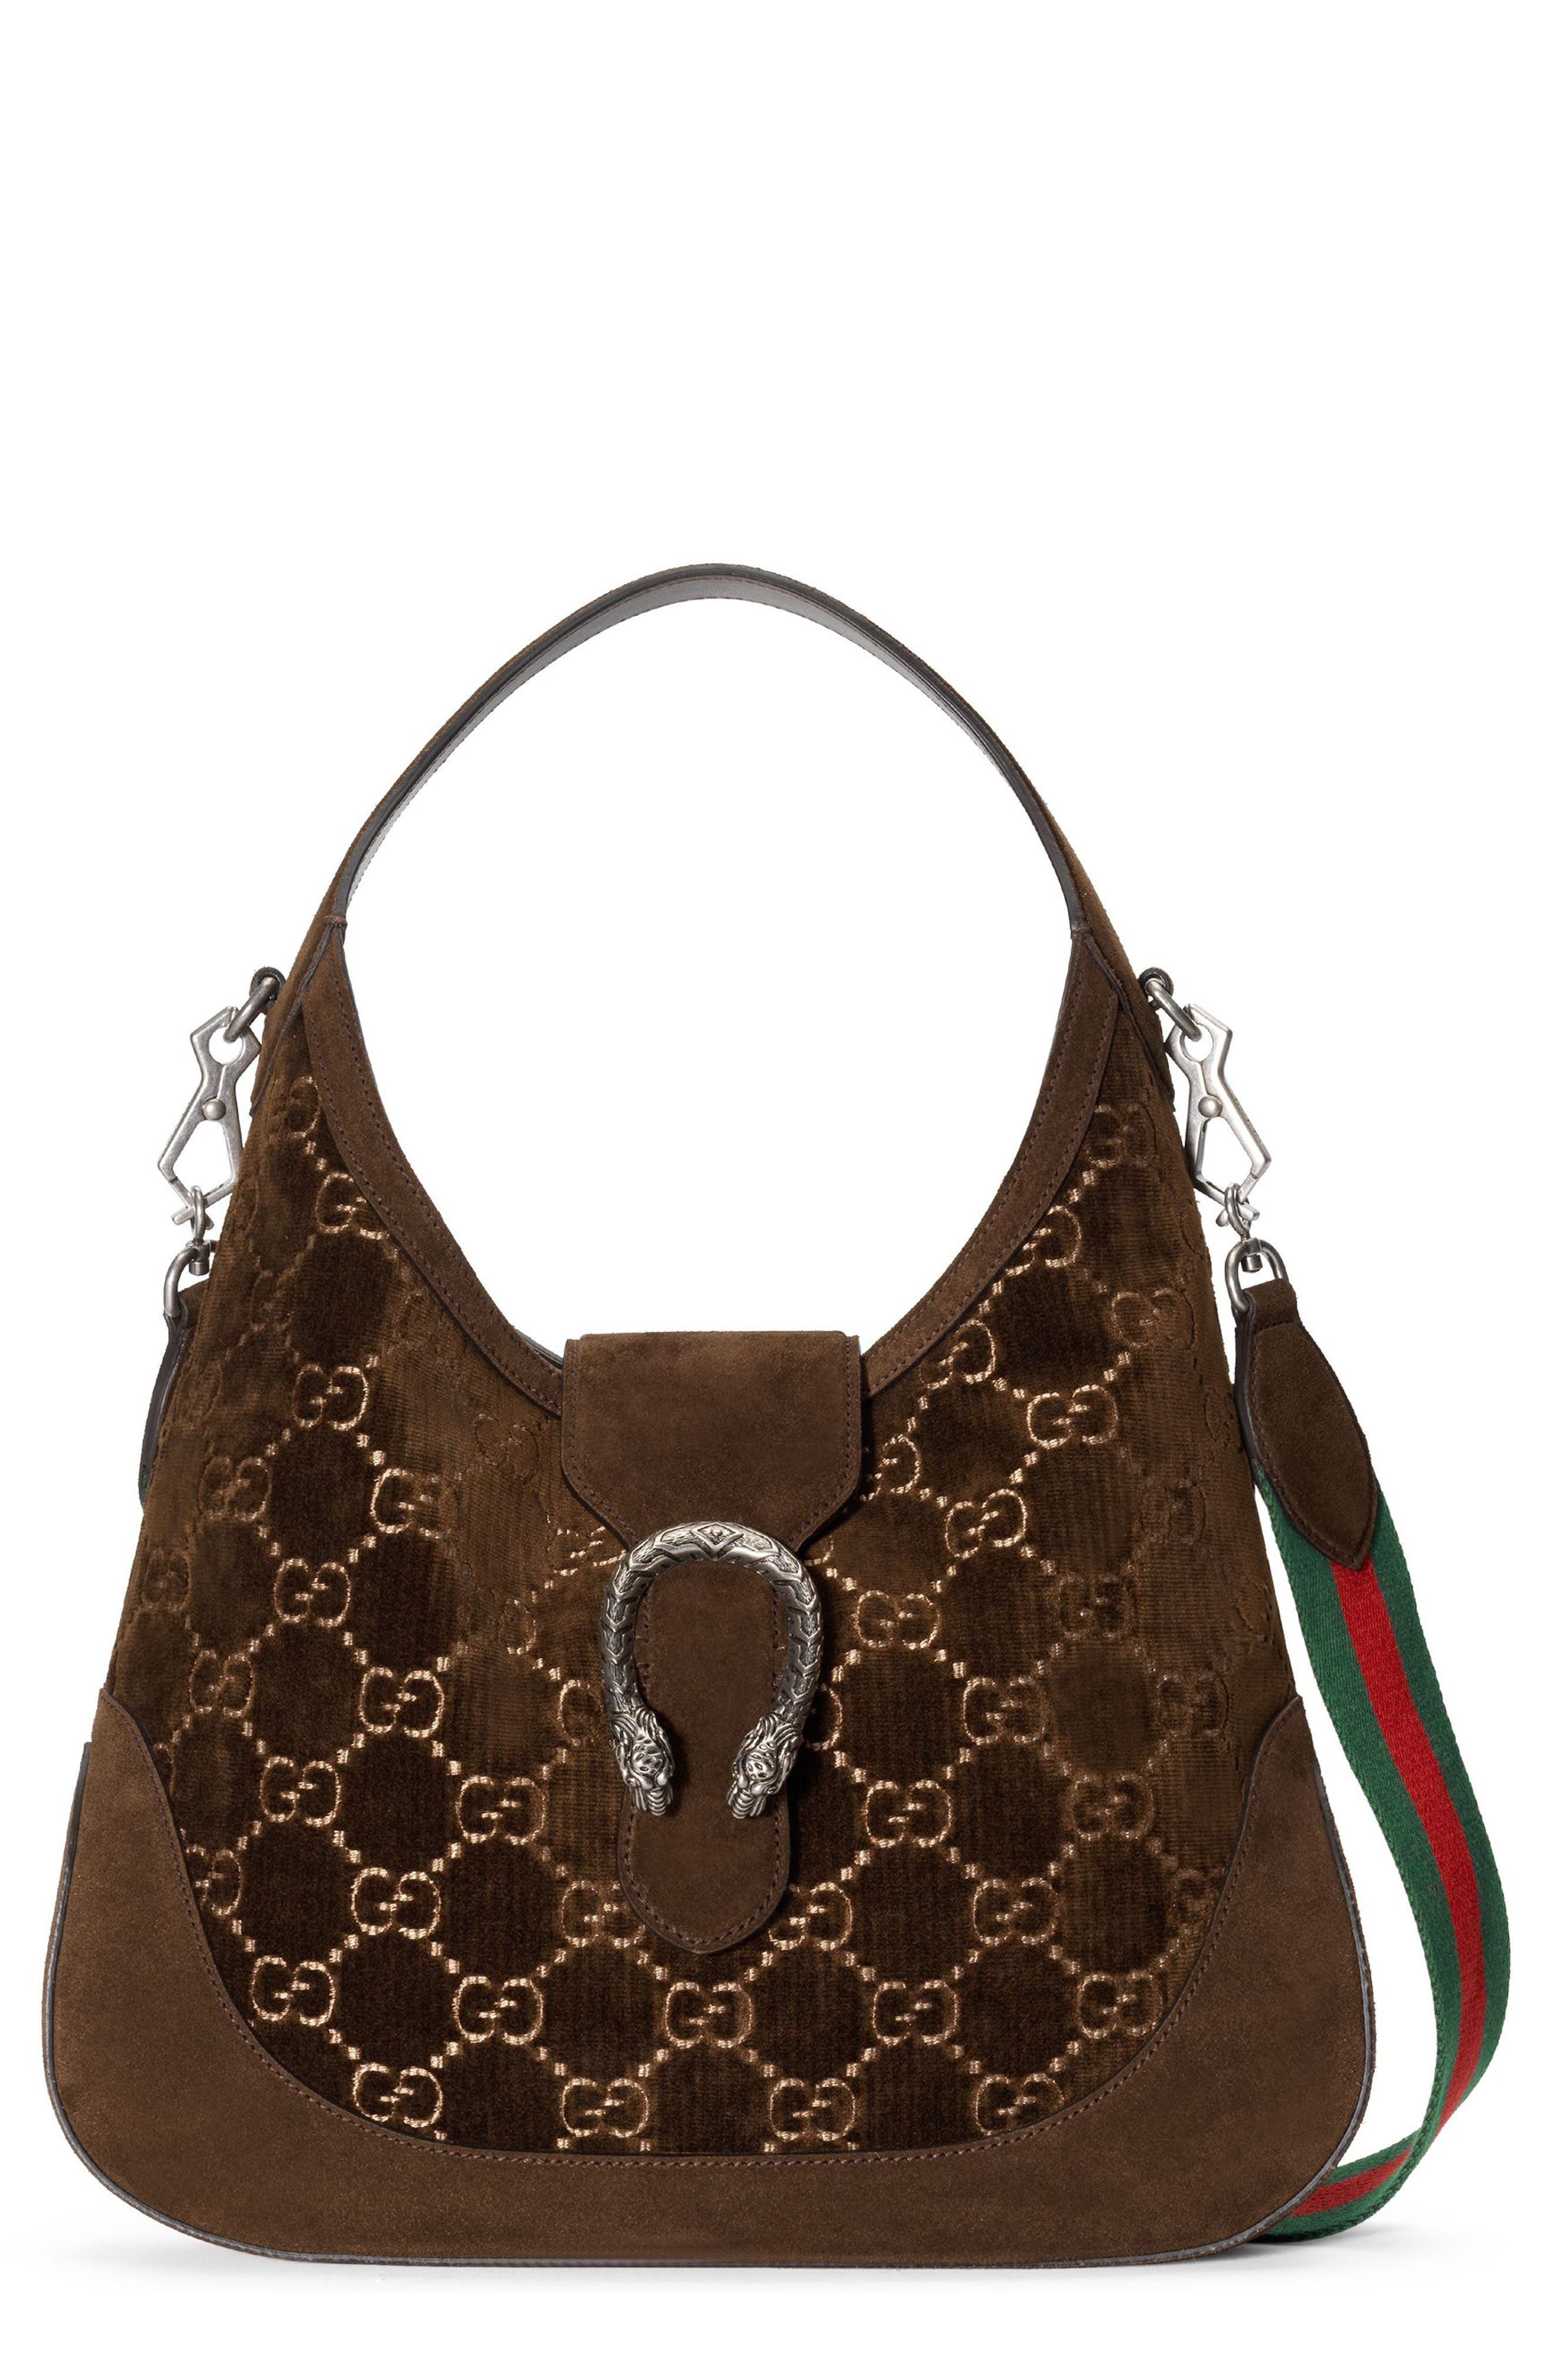 Medium Dionysus GG Velvet Hobo,                         Main,                         color, Brown/ Vert Red Vert